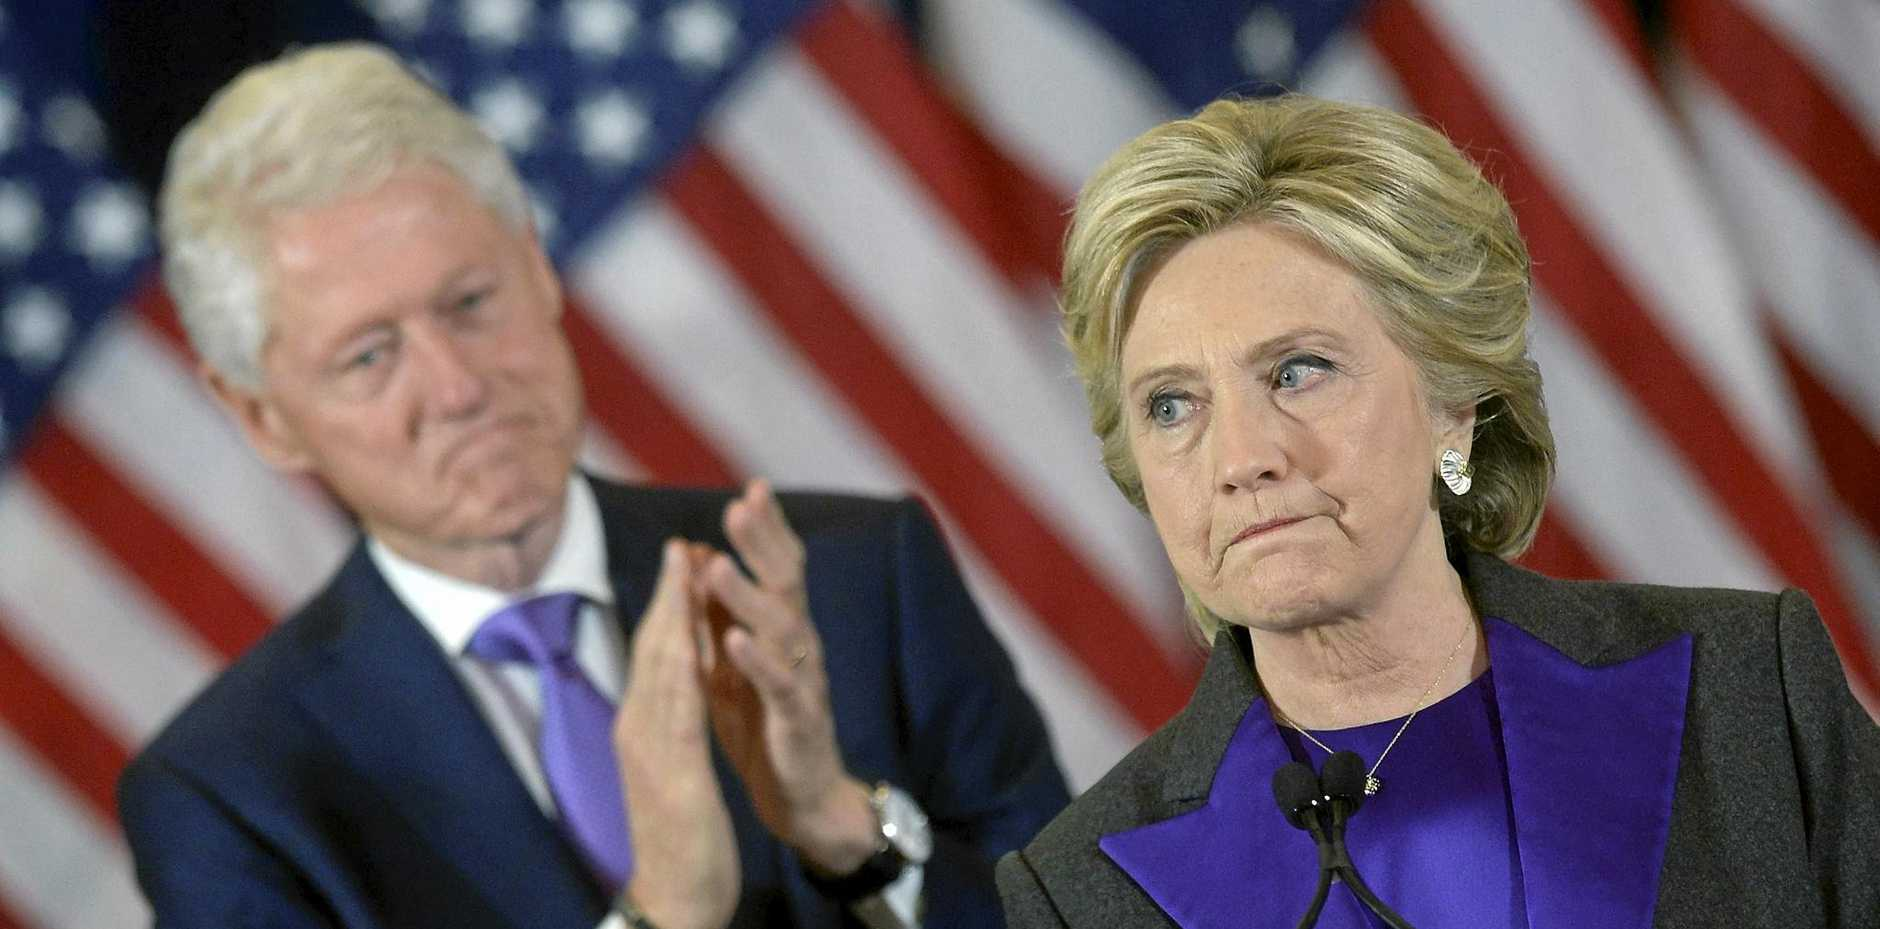 DIDN'T SEE THAT COMING: The world was shocked when Donald Trump beat Hillary Clinton in the race to the White House in this year's US election.